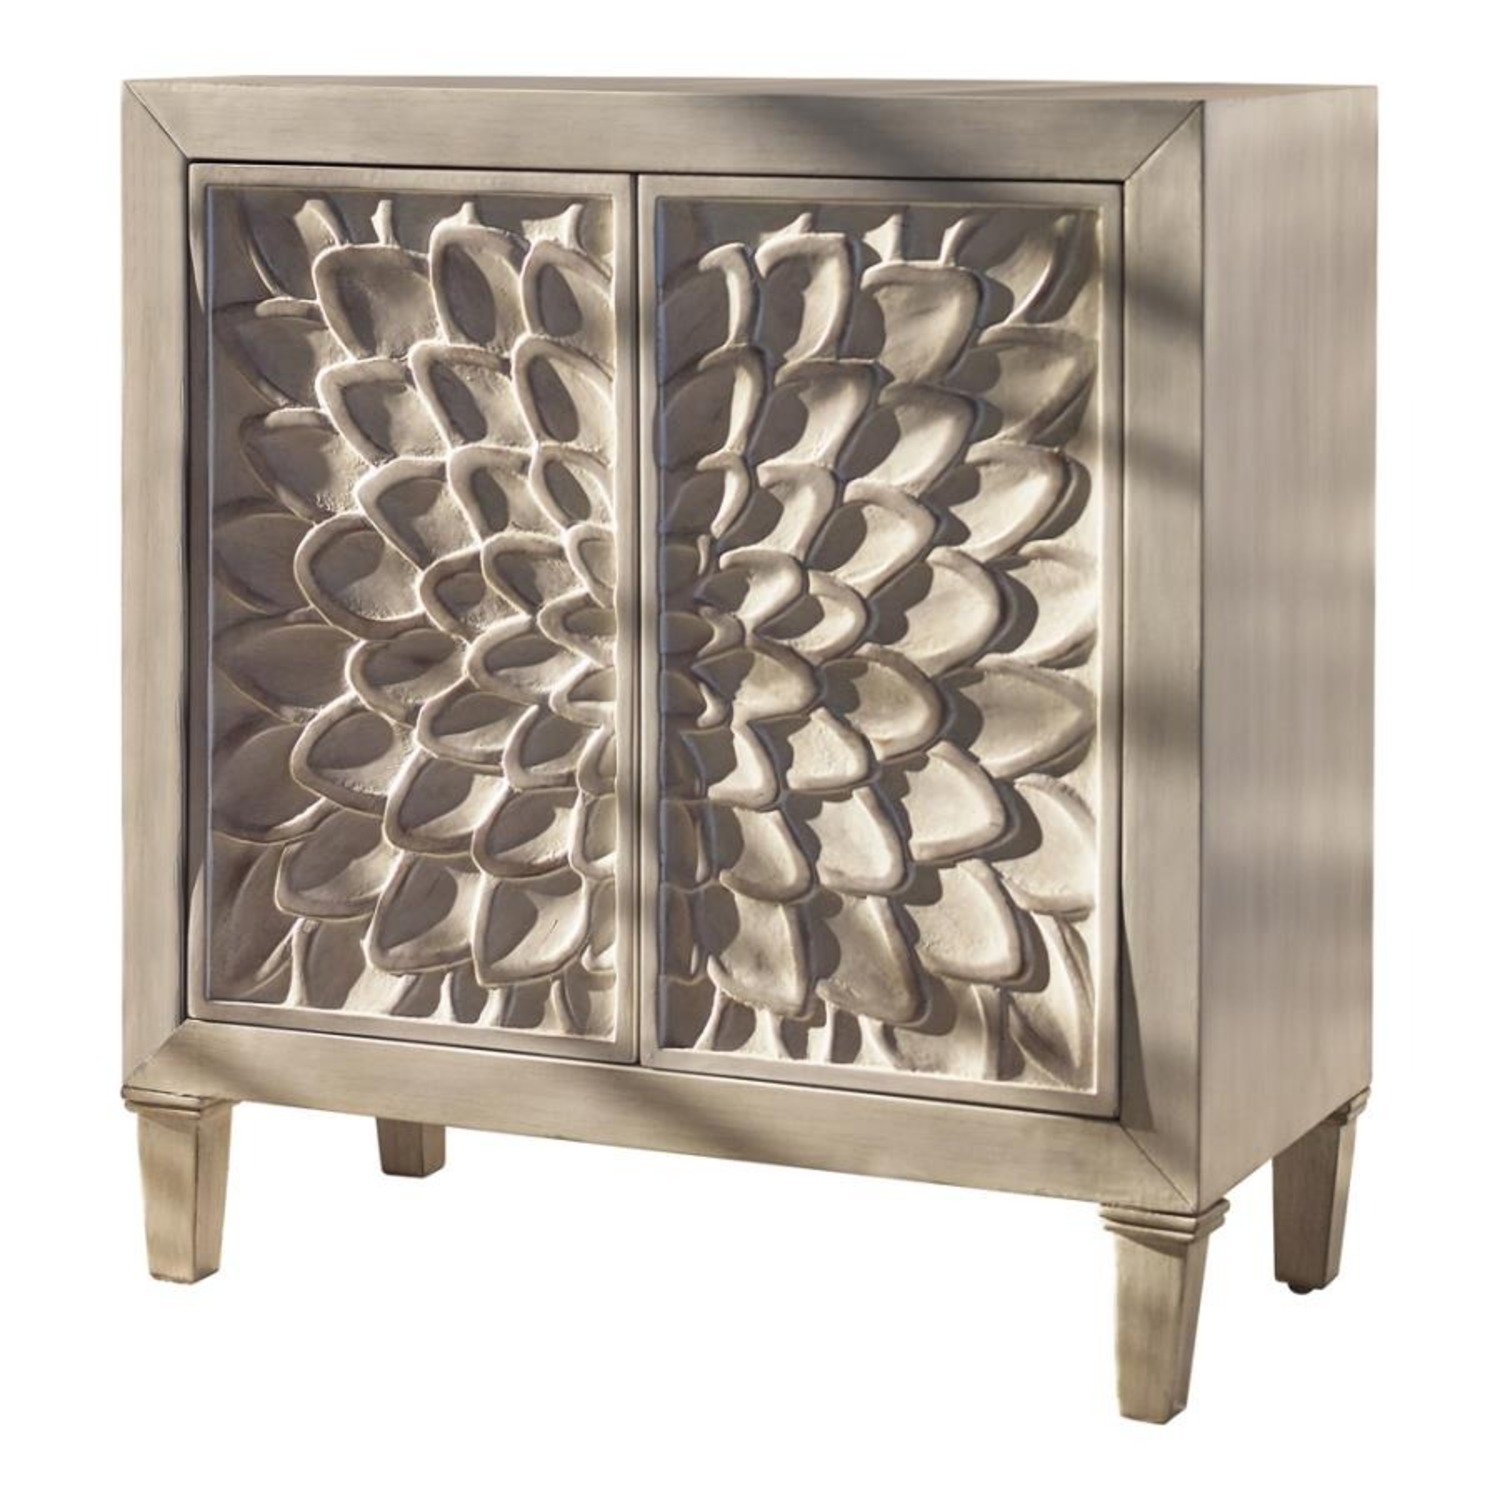 Accent Cabinet In Distressed White Wood Finish - image-0